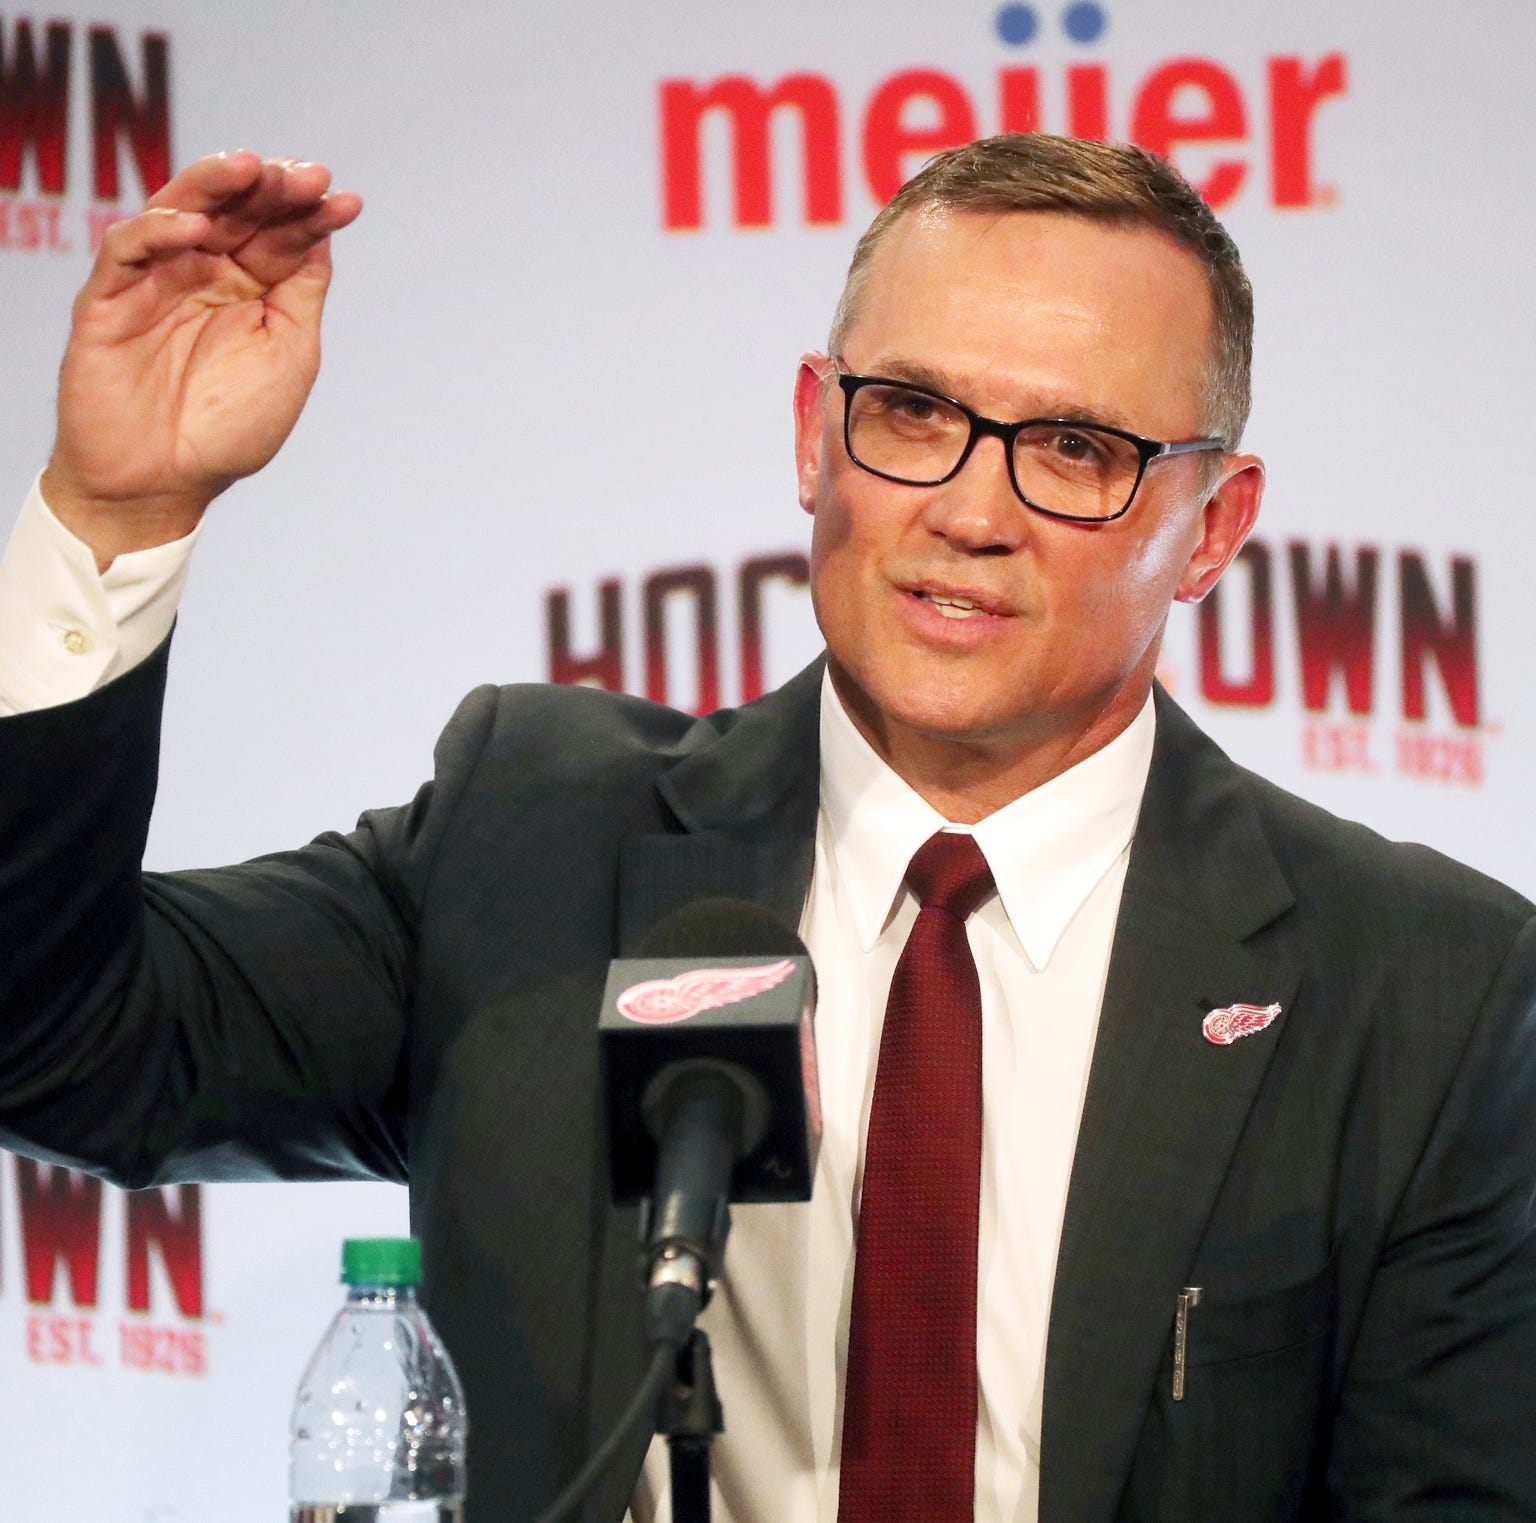 Steve Yzerman represents new (and only?) hope in Detroit sports title drought